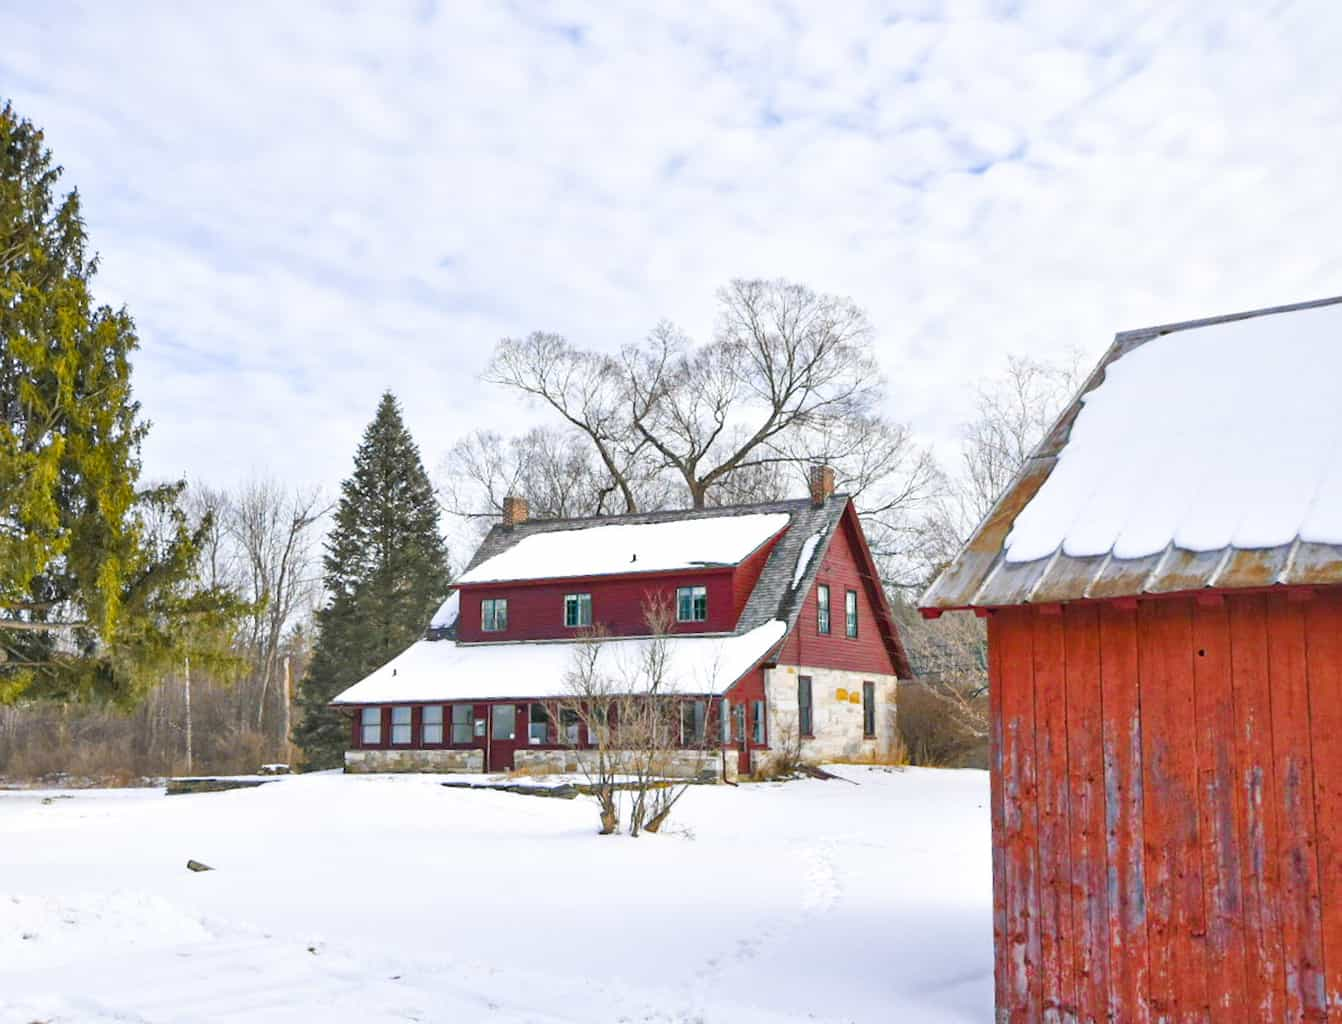 A winter view of the Robert Frost House in Shaftsbury, Vermont.